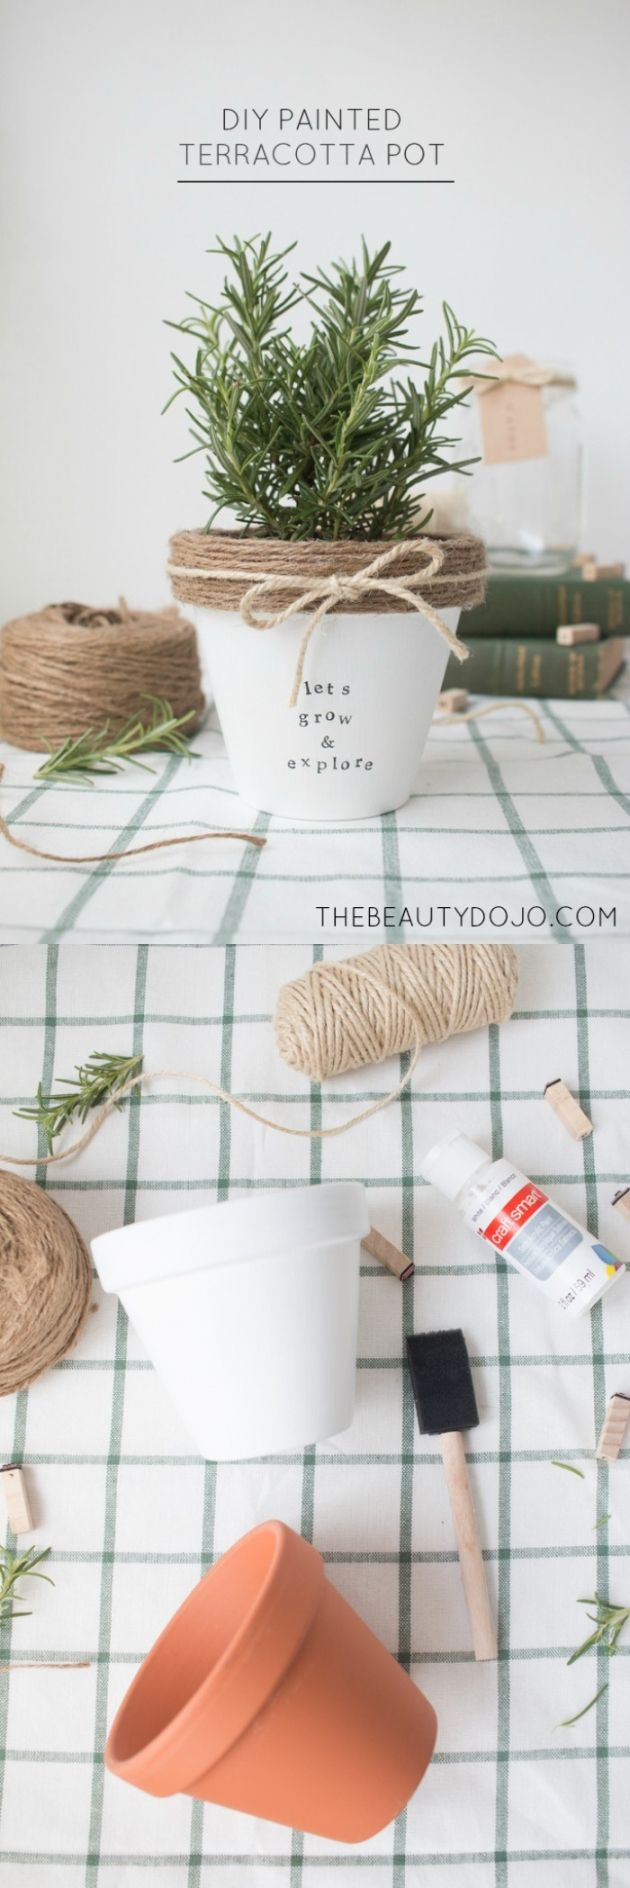 DIY Painted and decorated terracotta pot || Macetas decoradas con cuerda - Vía http://www.thebeautydojo.com/